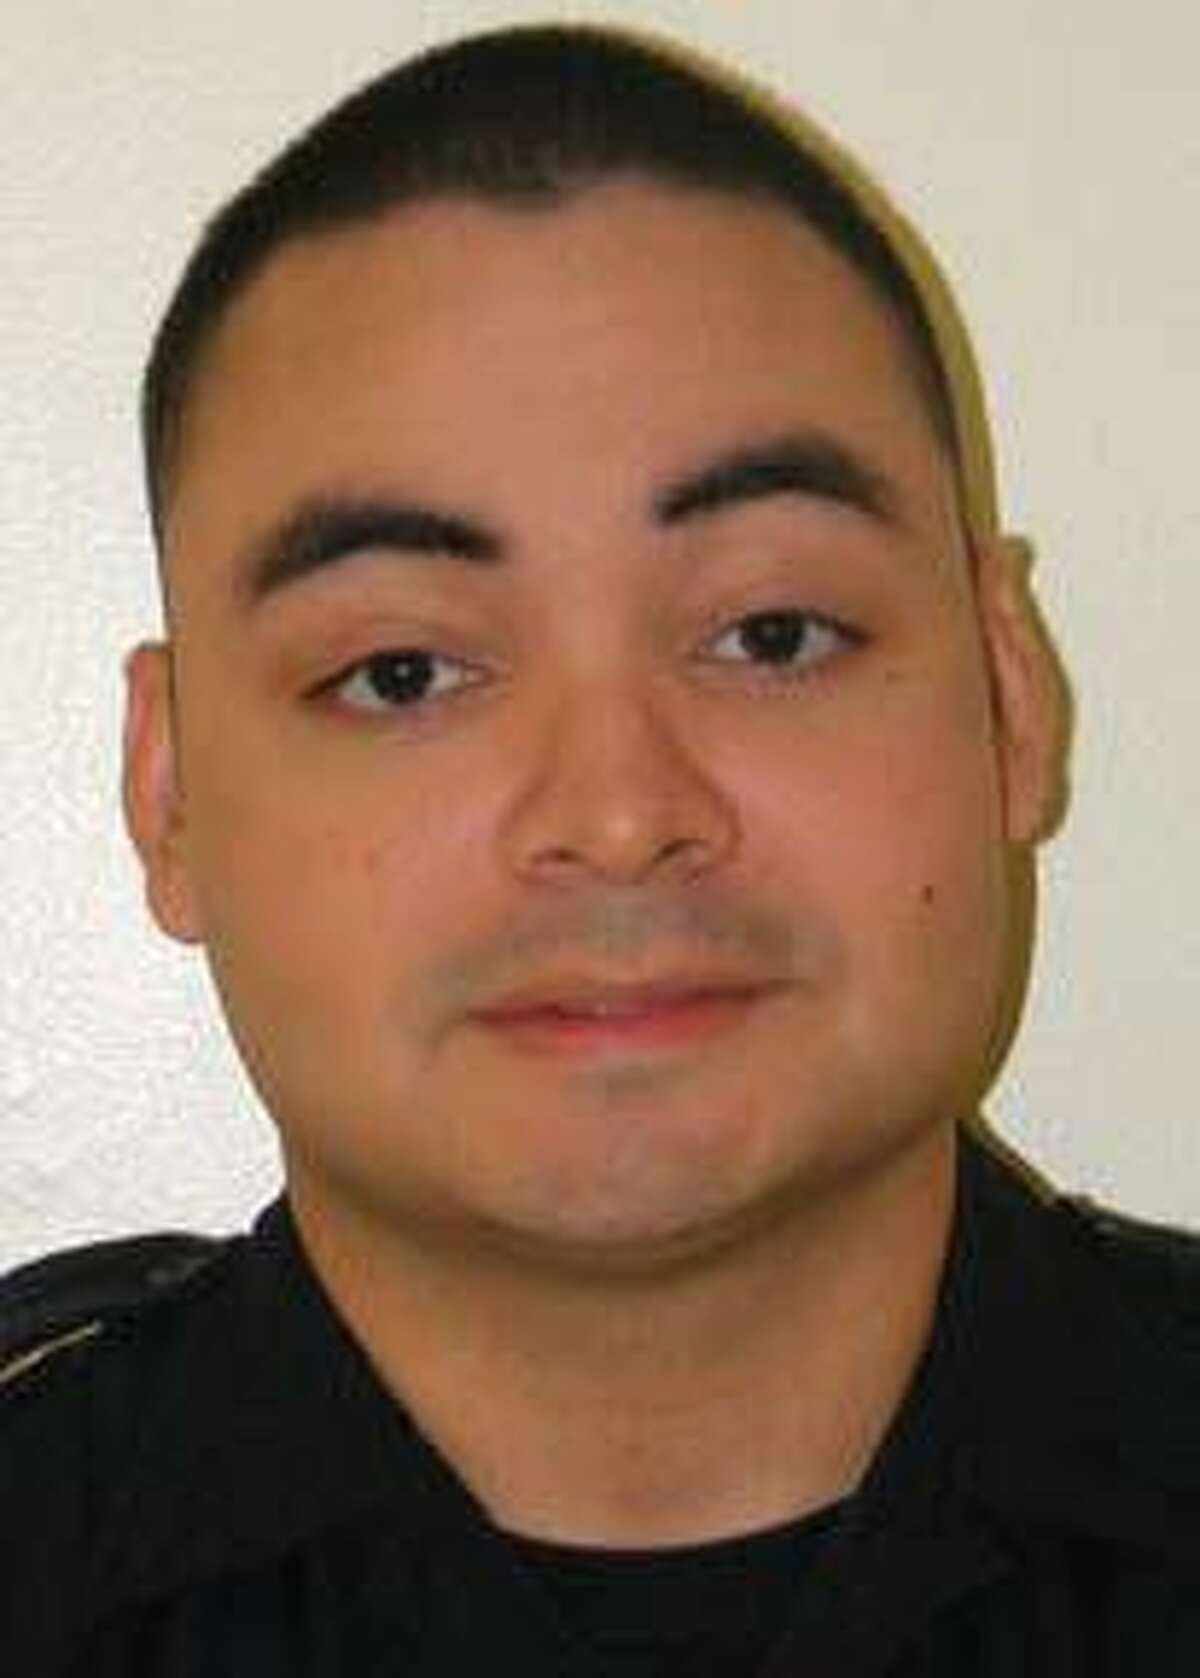 Bexar County Sheriff's Deputy Joseph Trevino, 33, reportedly fired the shot that killed Nicholas Norris, 38, during a struggle to arrest him on Sept. 30, 2021, near the intersection of Potranco Road and Sundance Crest.